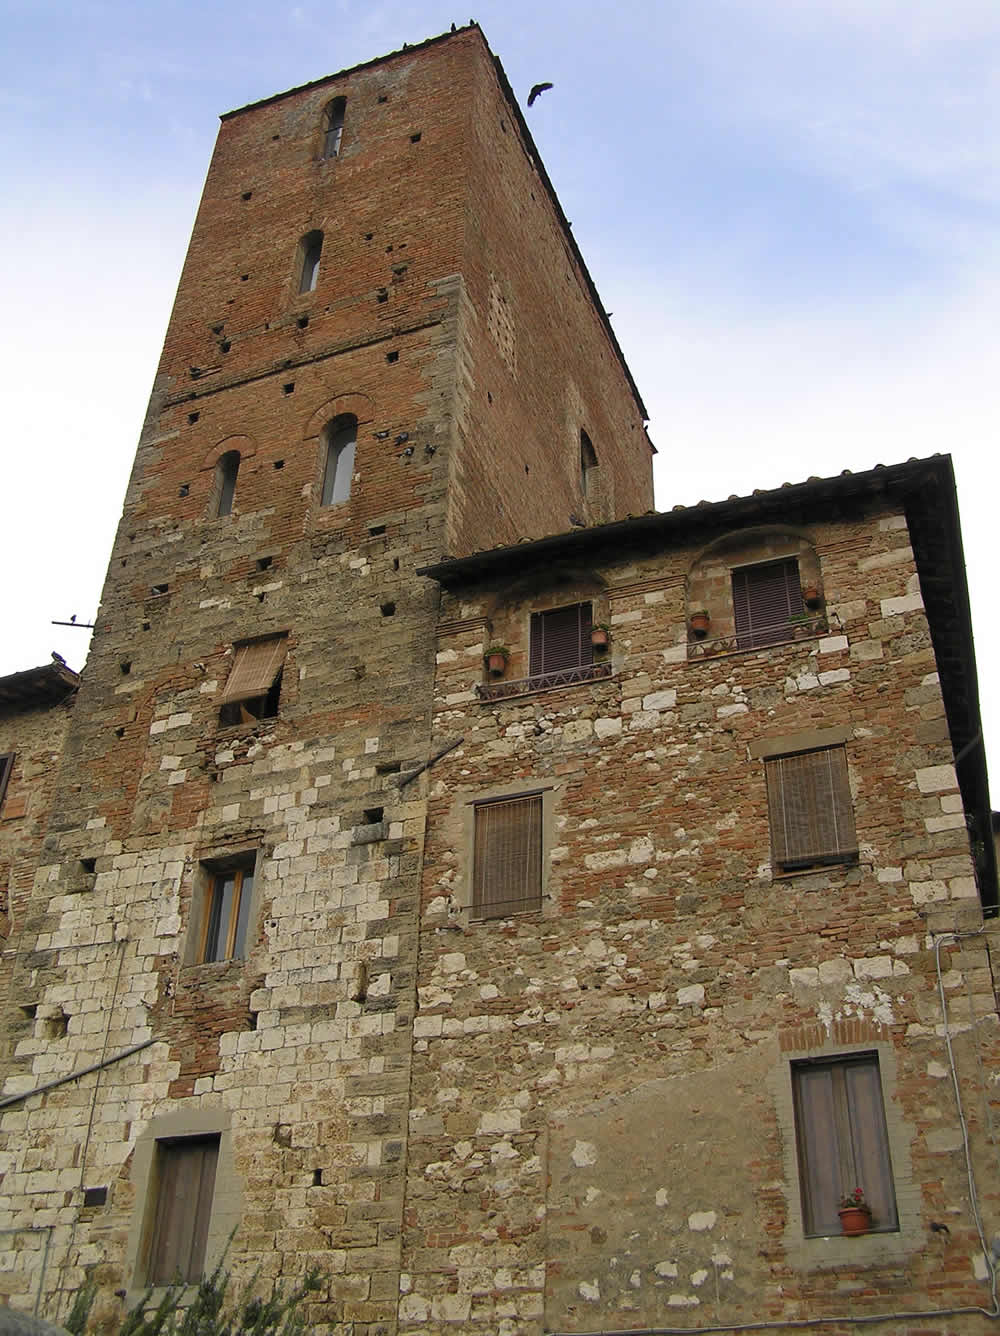 Torre di Arnolfo, Colle Val d'Elsa, Siena. Author and Copyright Marco Ramerini